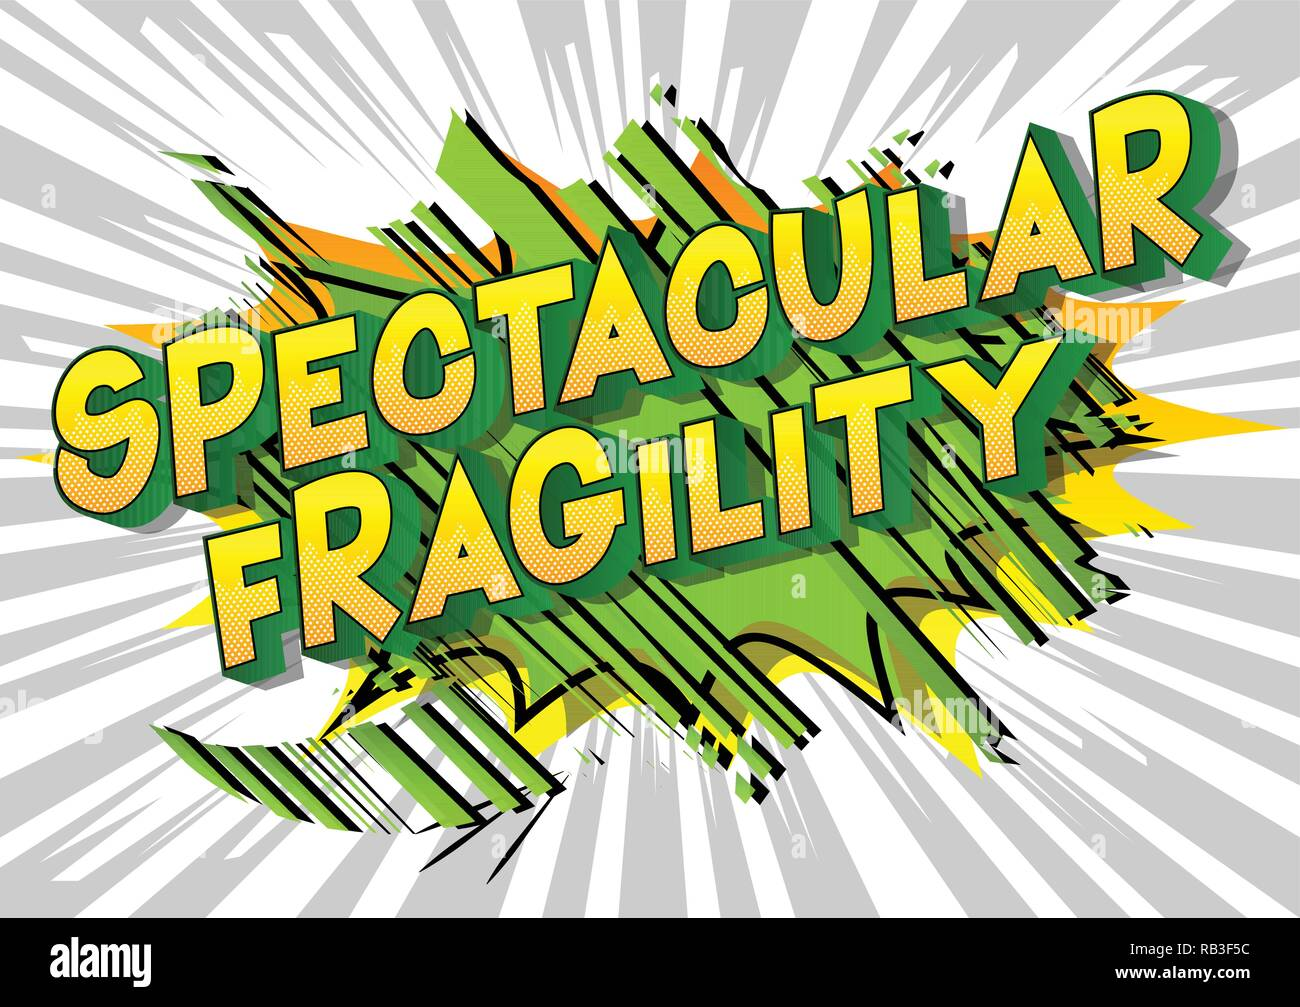 Spectacular Fragility - Vector illustrated comic book style phrase on abstract background. - Stock Vector